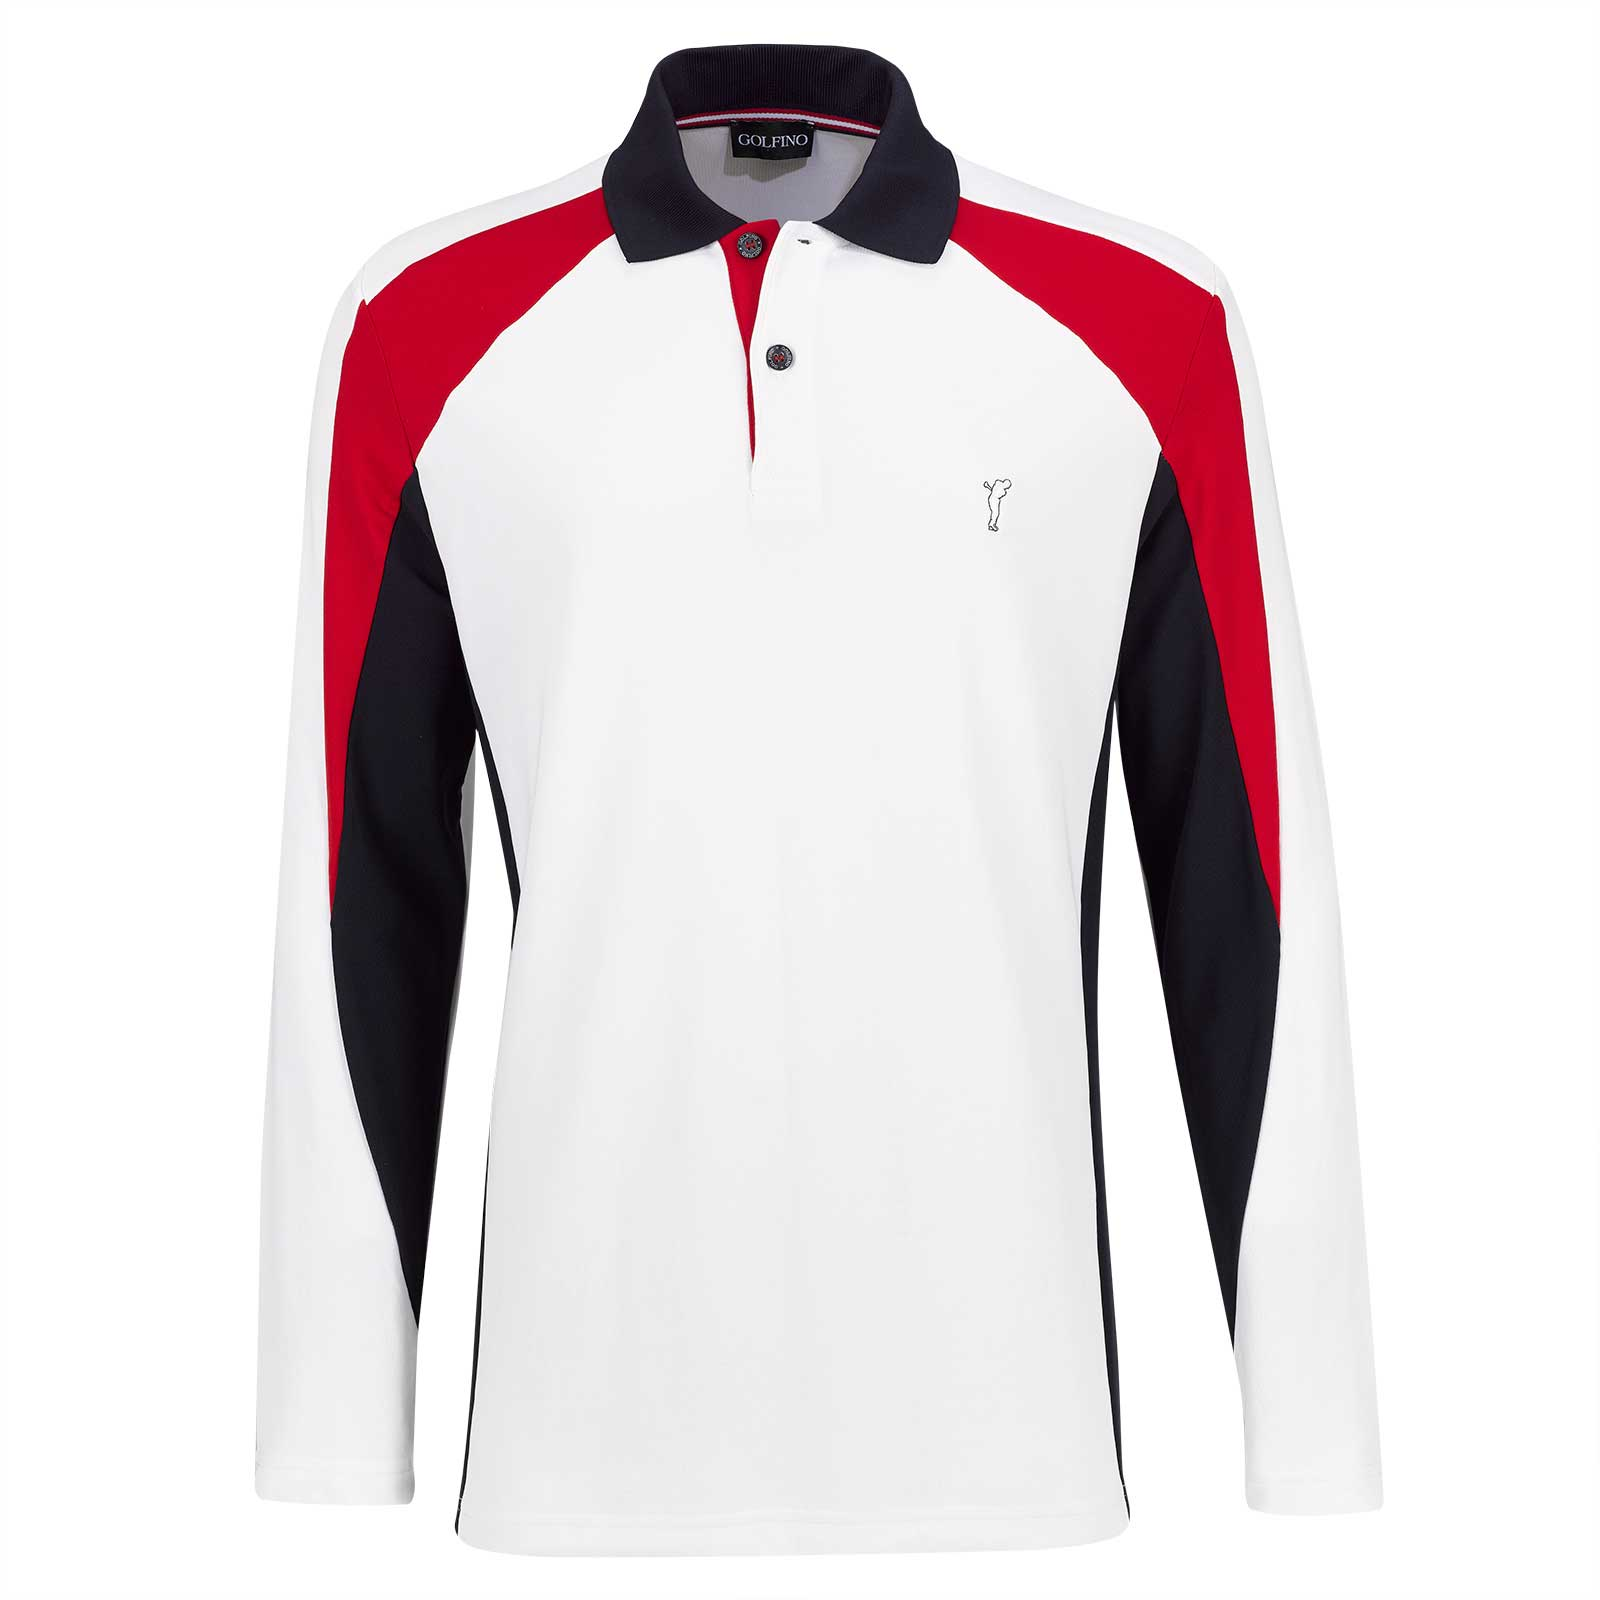 Men's long-sleeve Performance golf polo with Moisture Management